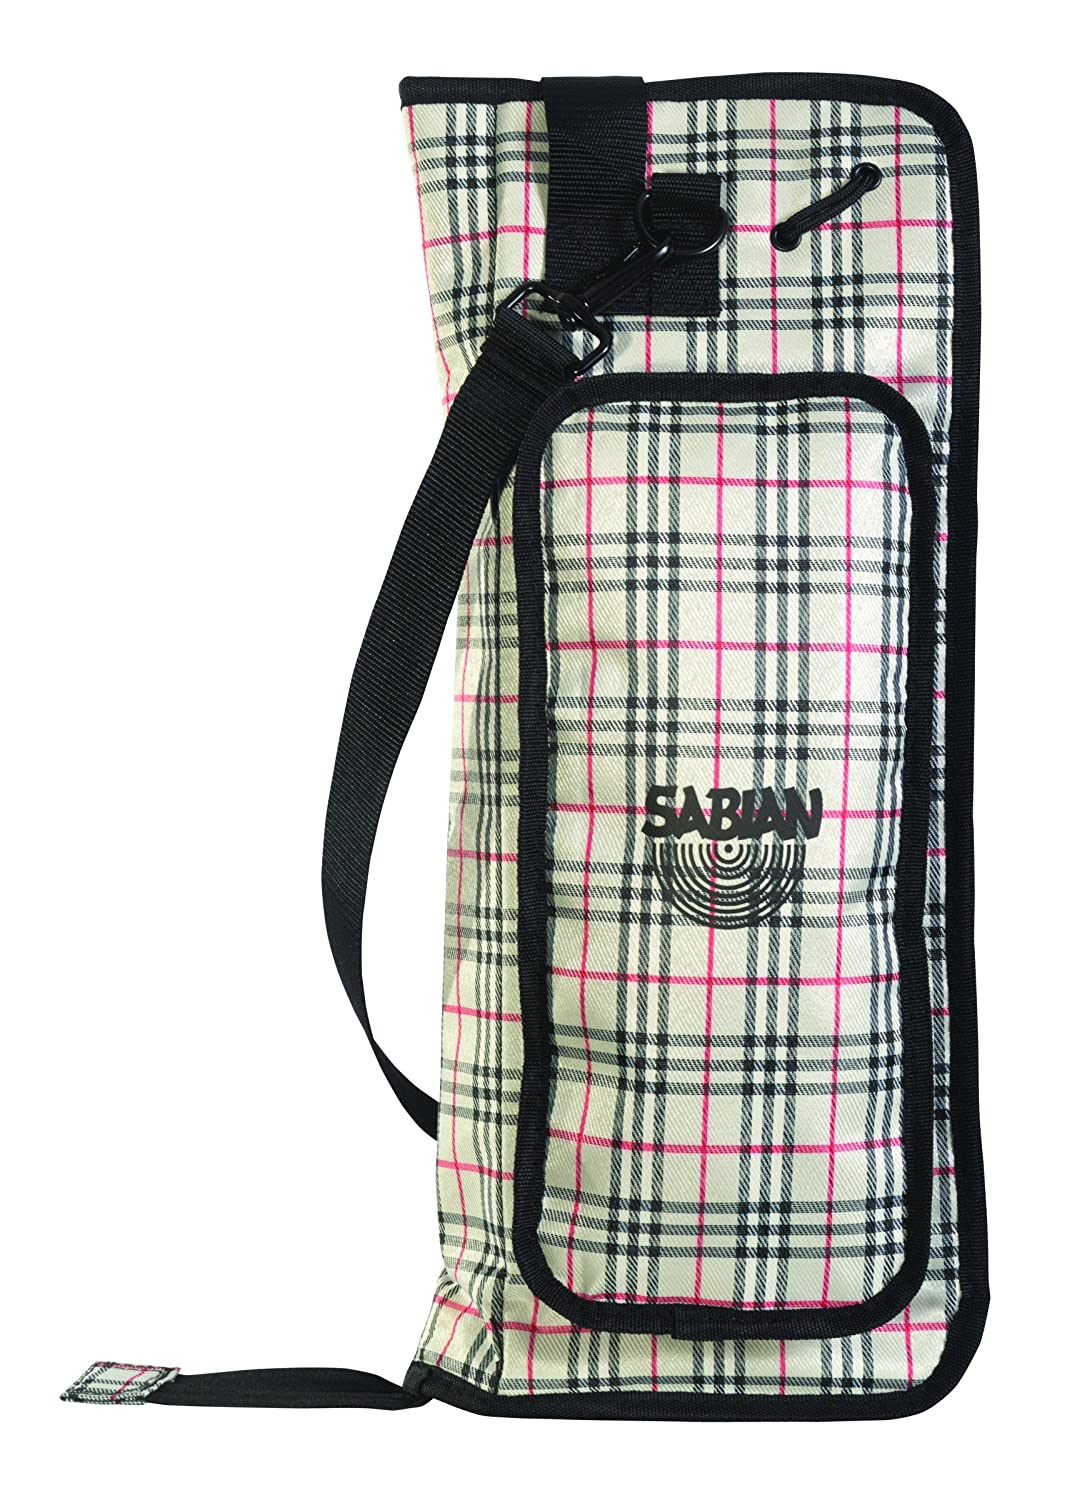 Sabian Performance Accessories QS1PD Drumstick Bag, Plaid